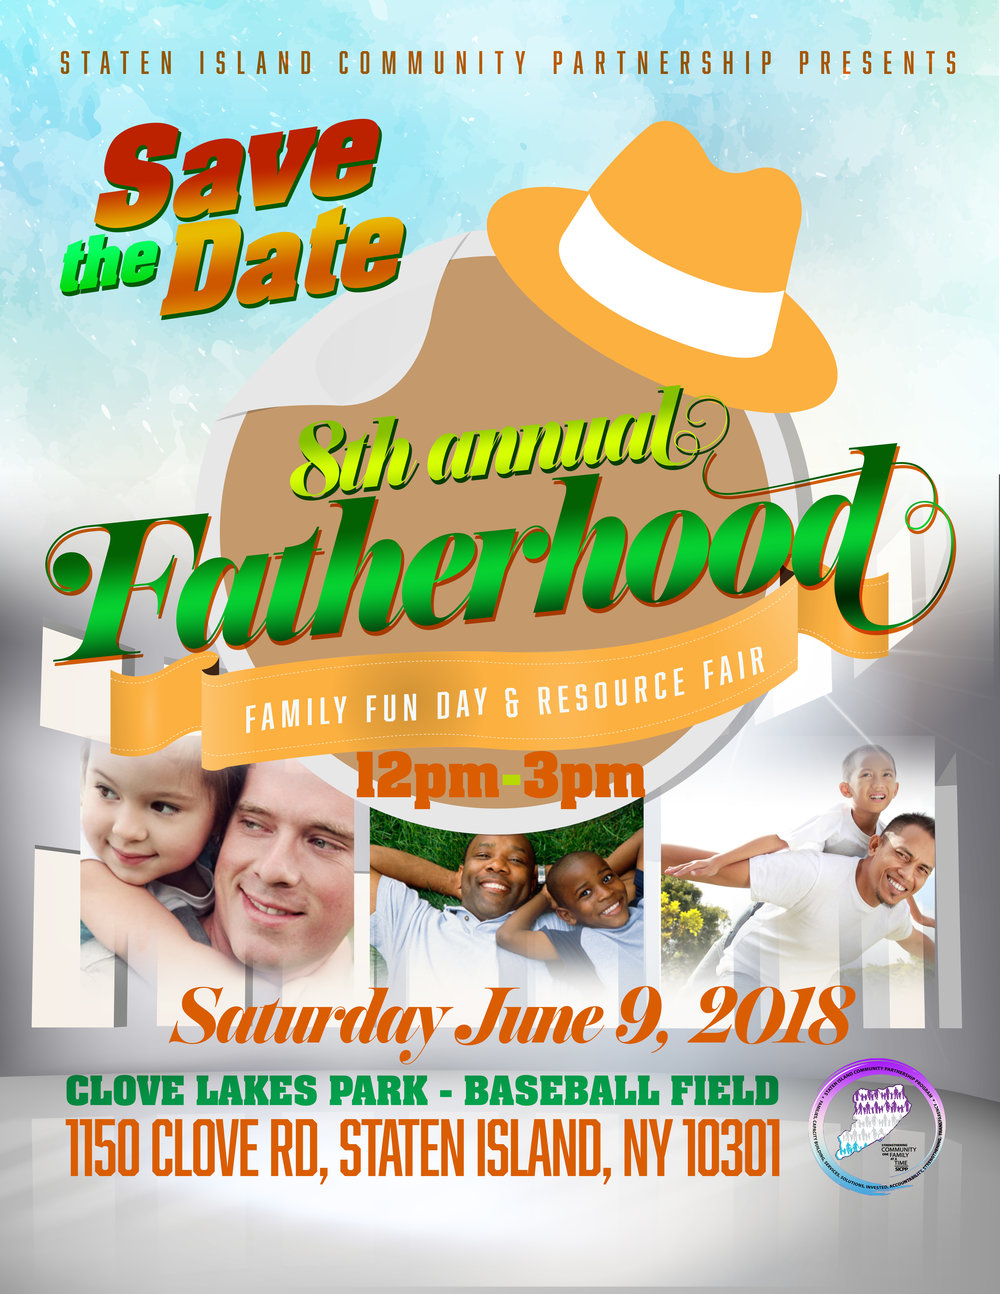 8th Annual Fatherhood-Flyer.jpg